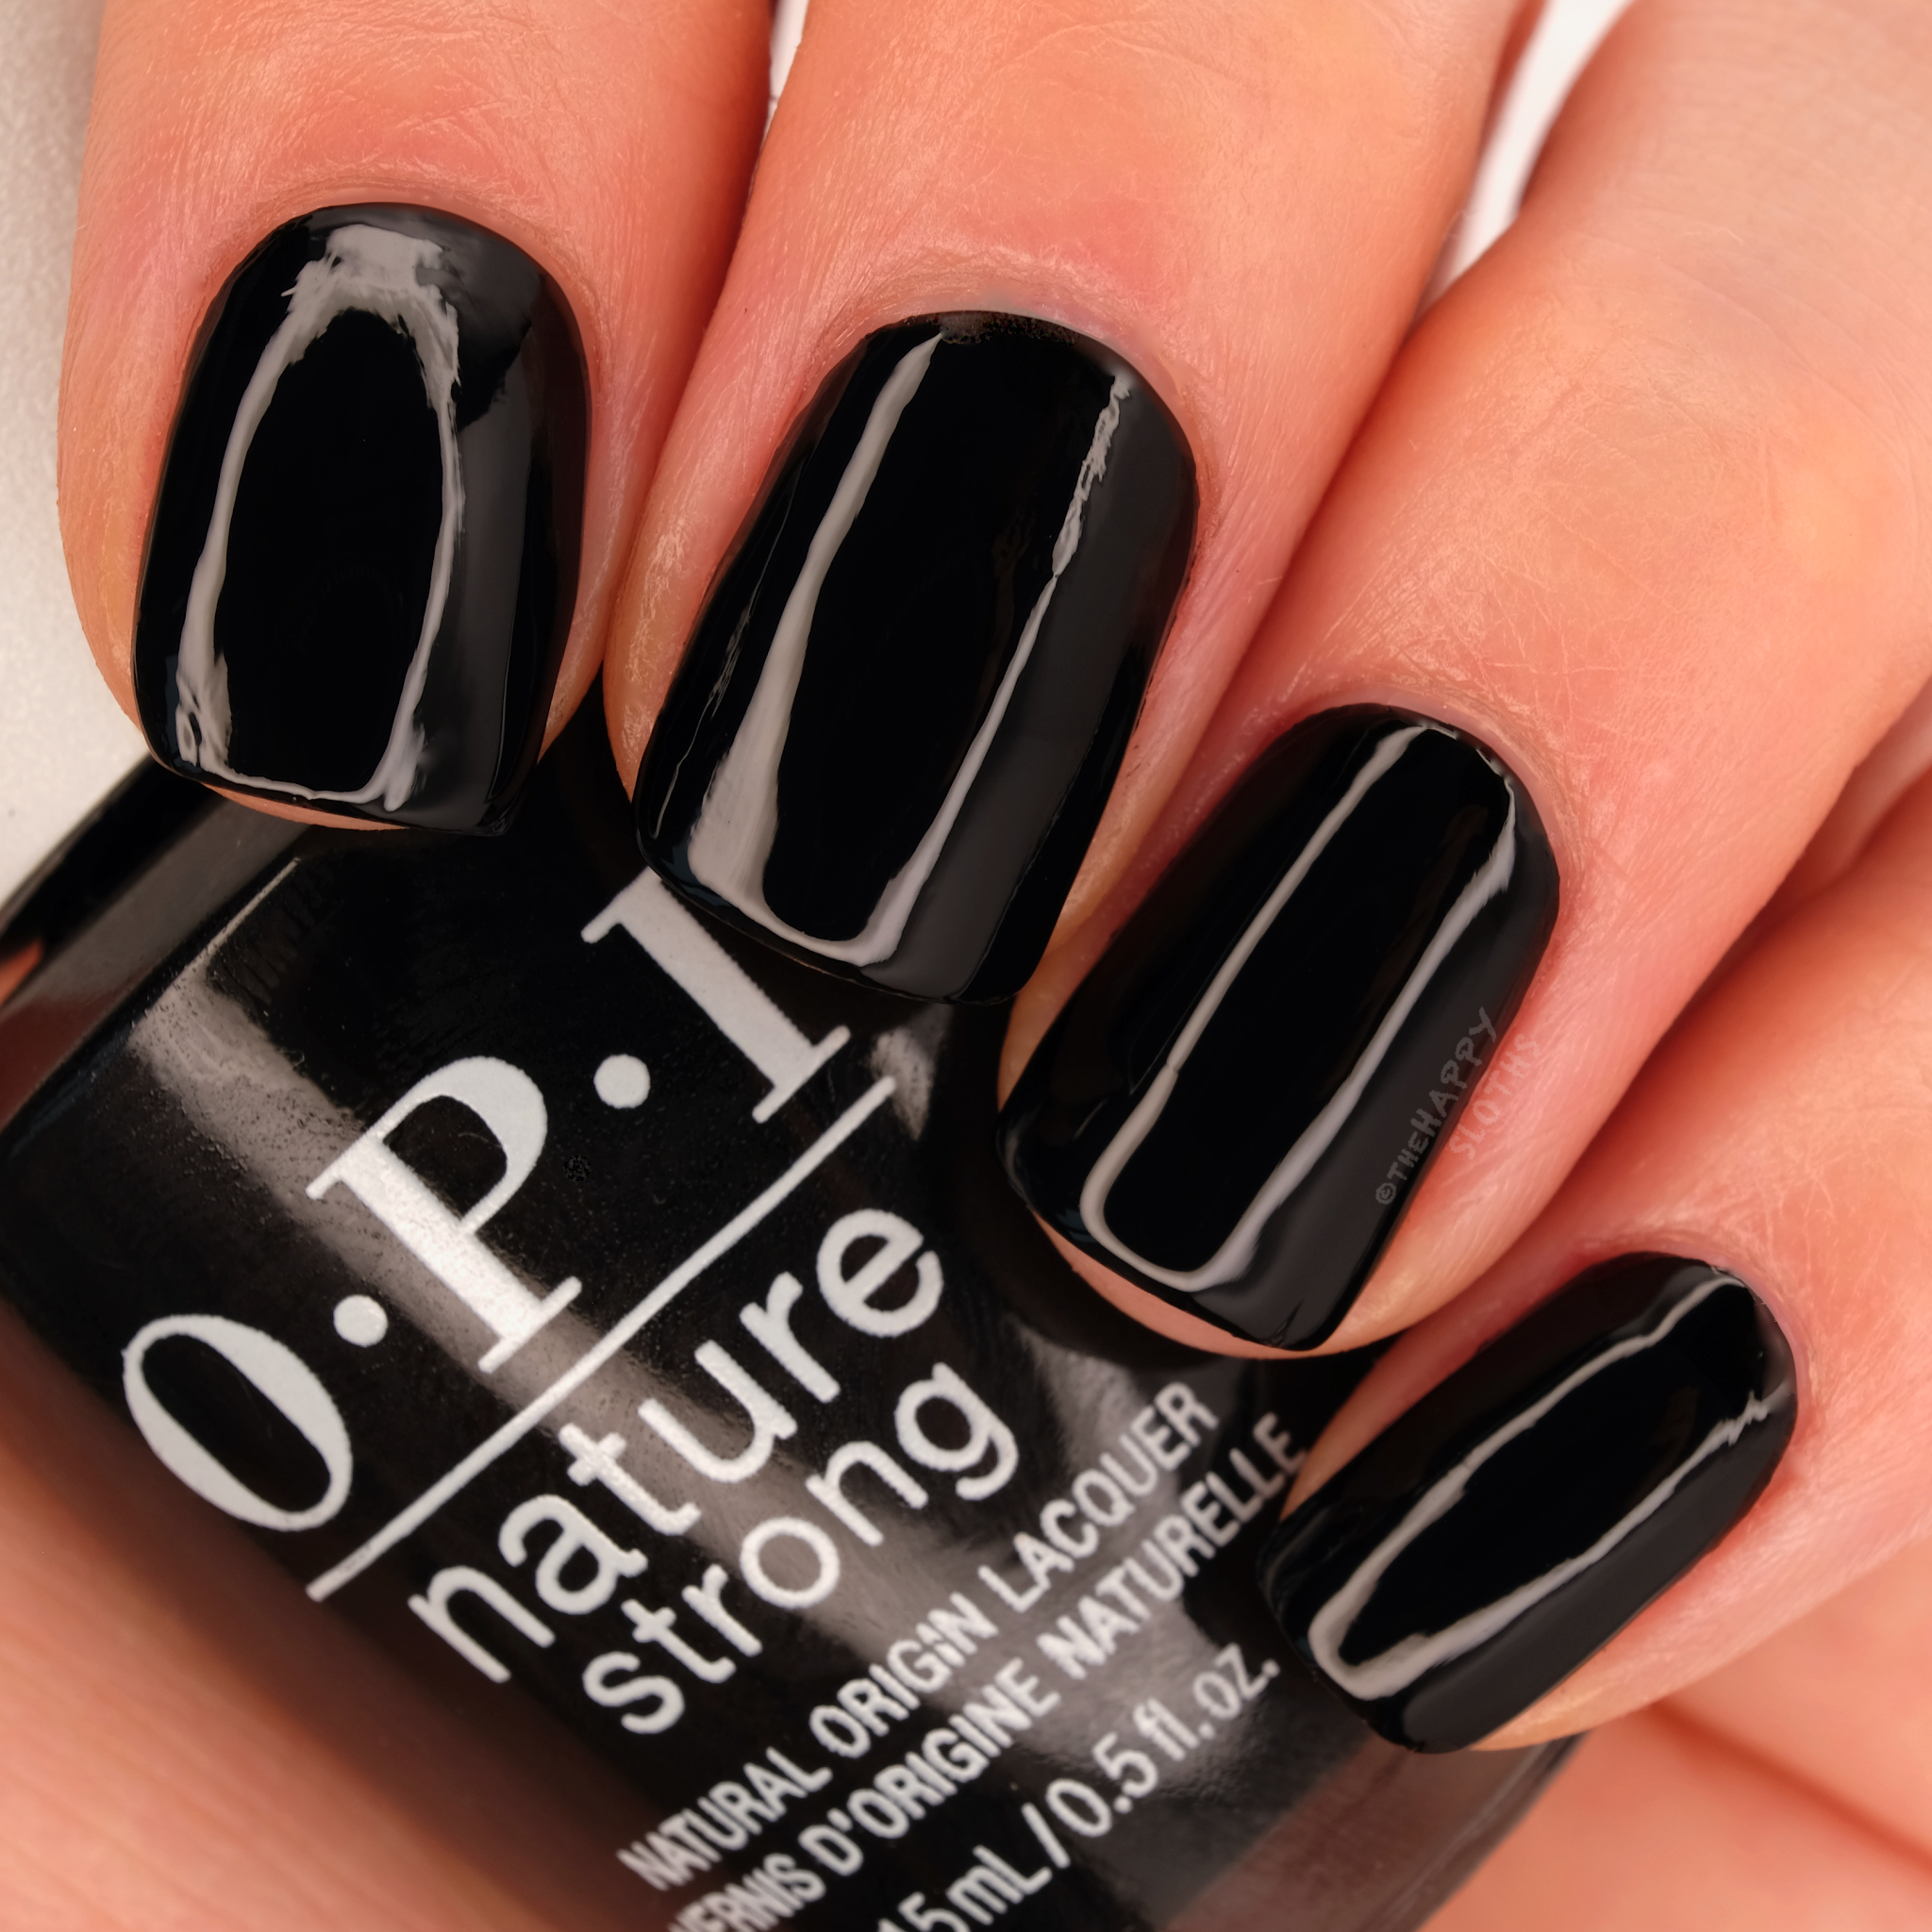 OPI Nature Strong   Onyx Skies: Review and Swatches